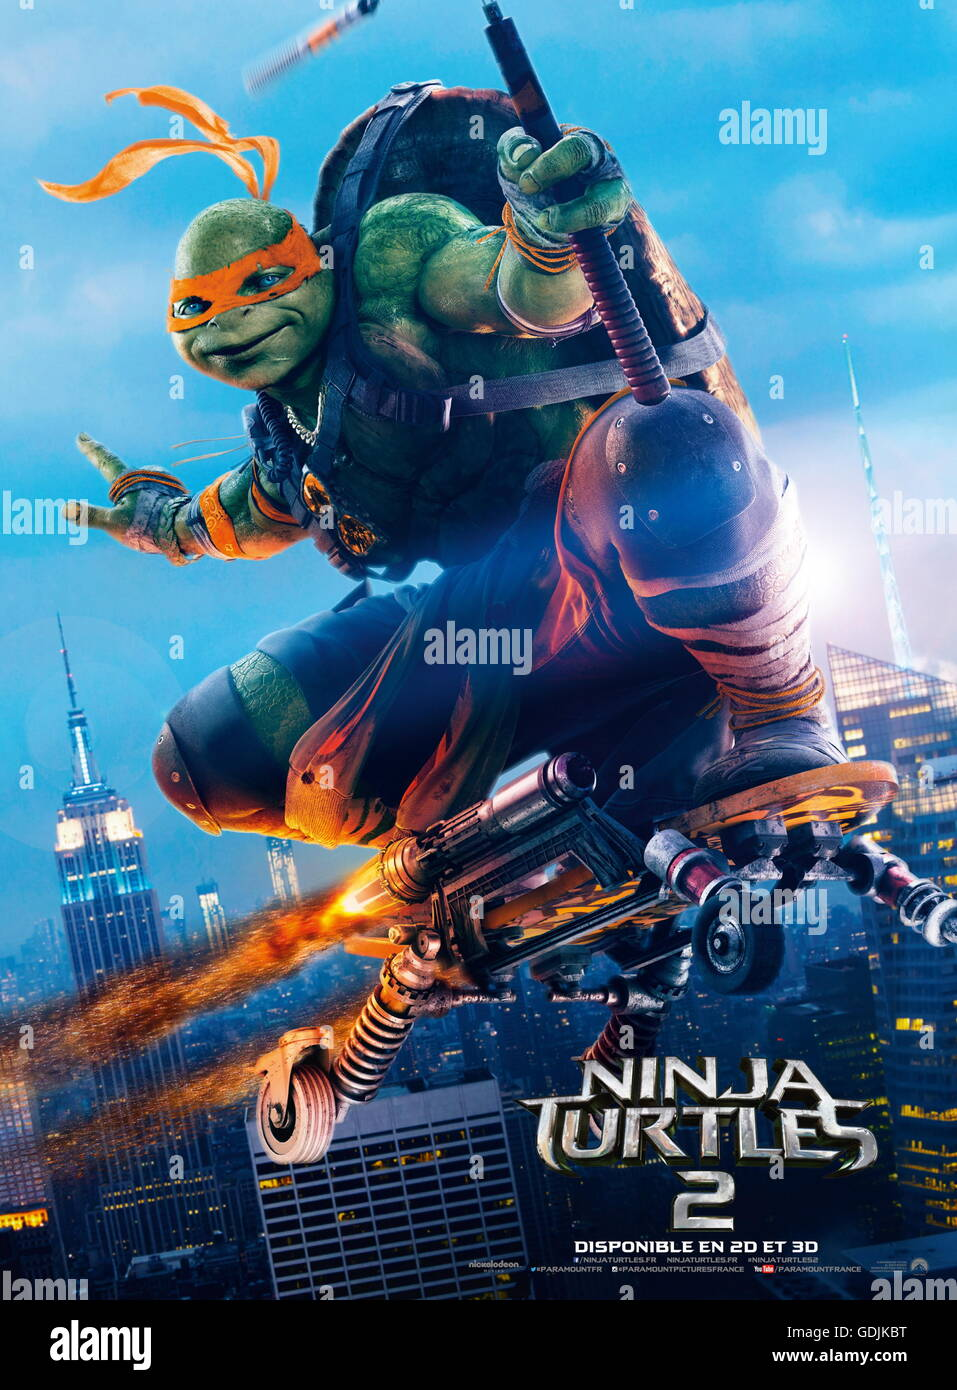 RELEASE DATE: June 3, 2016 TITLE: Teenage Mutant Ninja Turtles: Out of The Shadows STUDIO: Paramount Pictures DIRECTOR: - Stock Image